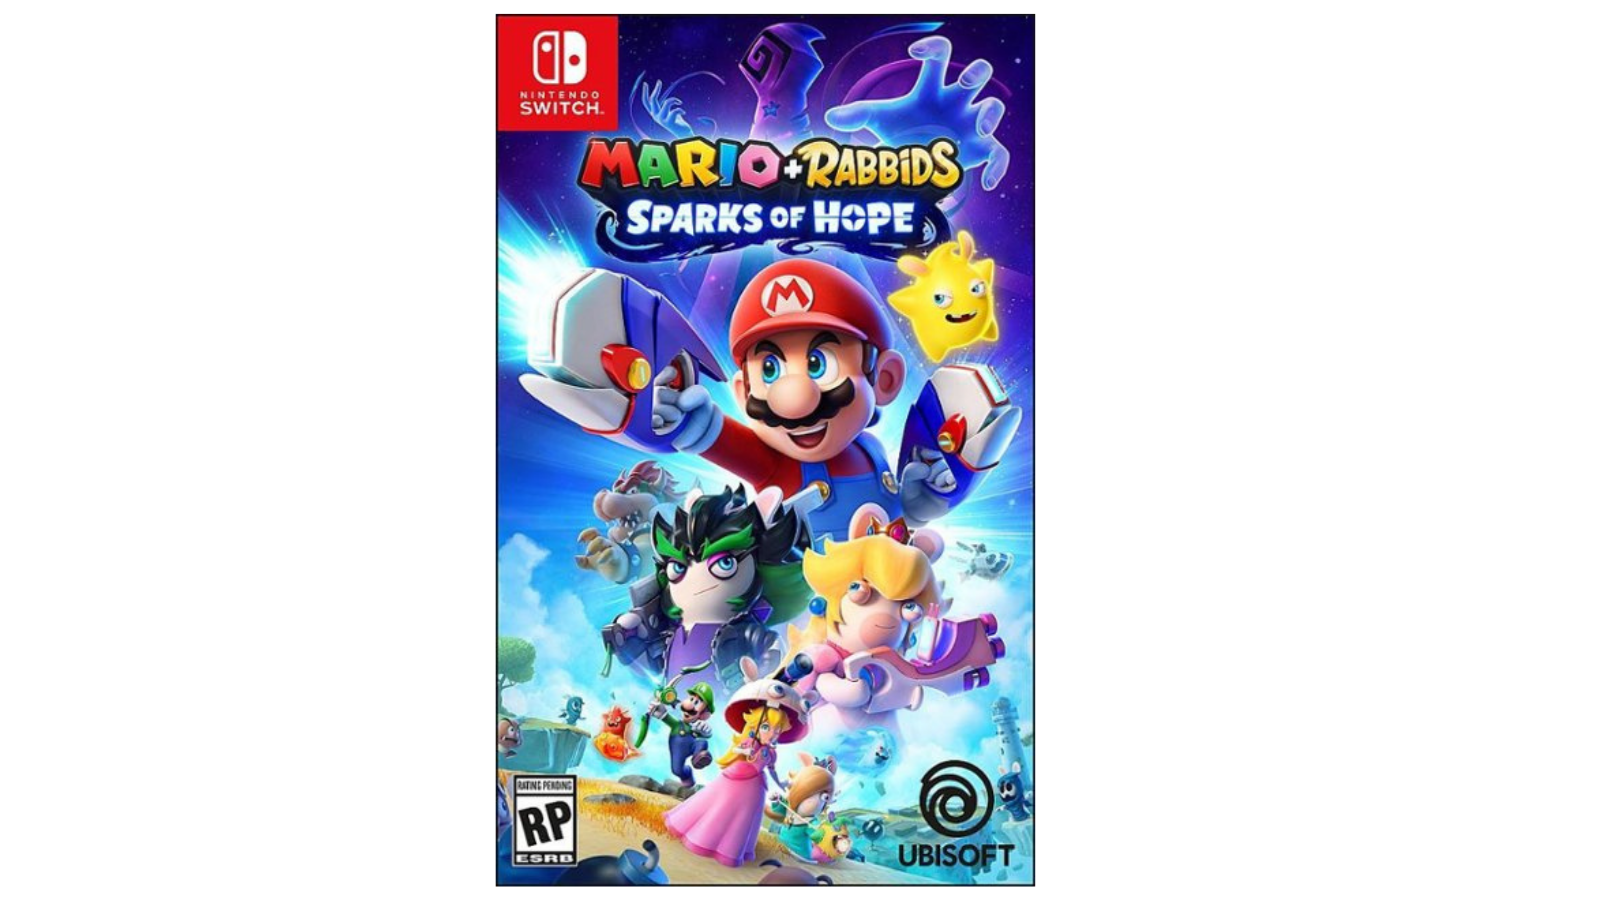 mario+rabbids sparks of hope